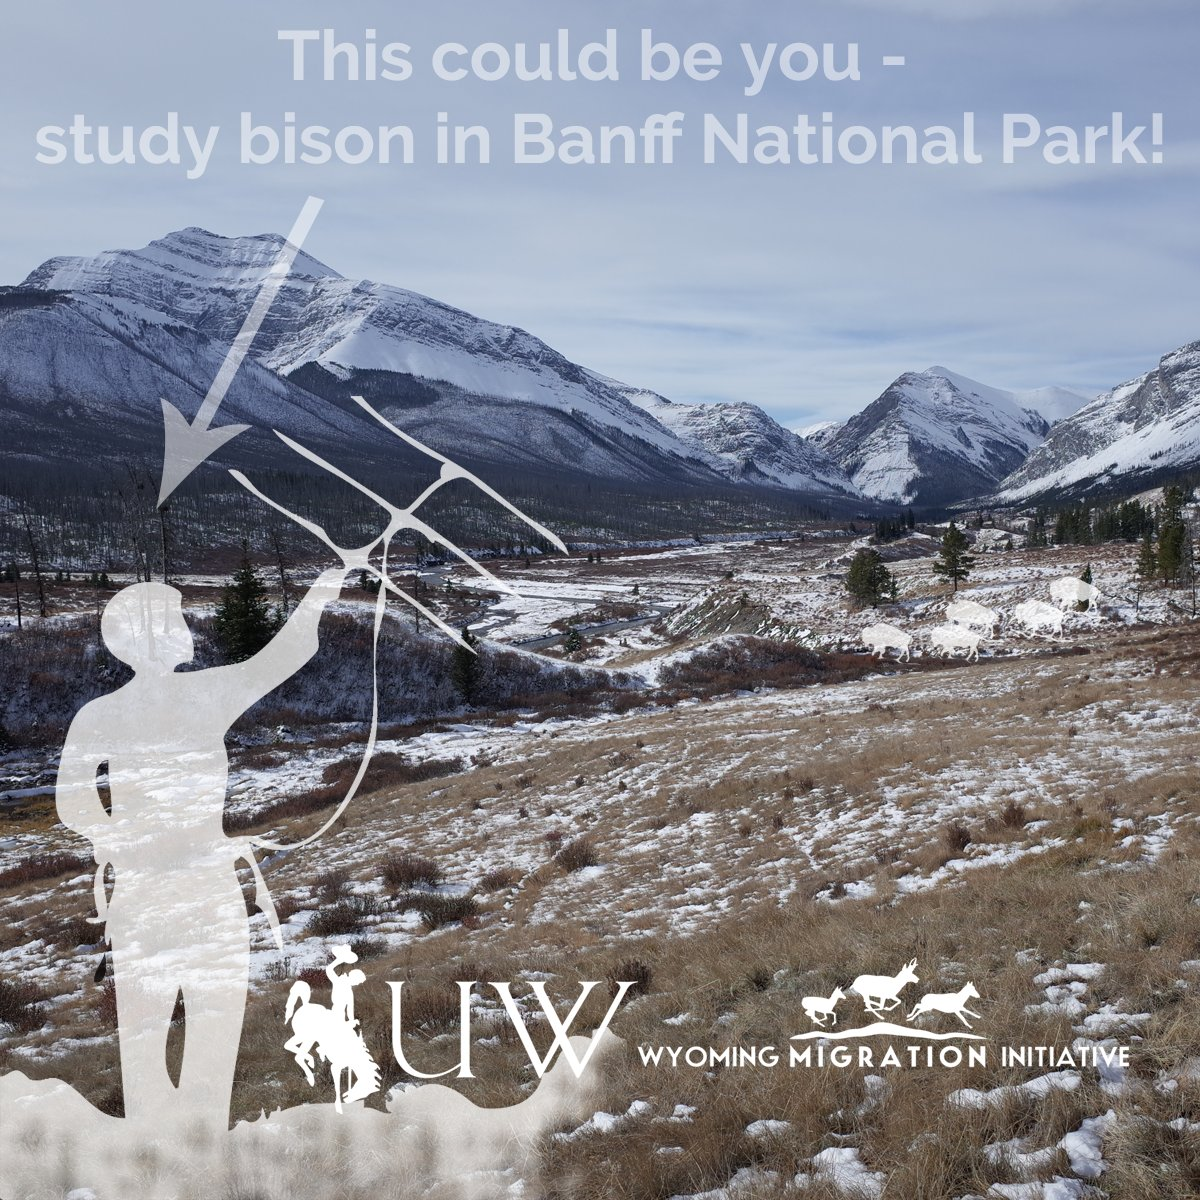 Wyoming Migration Initiative on Twitter: